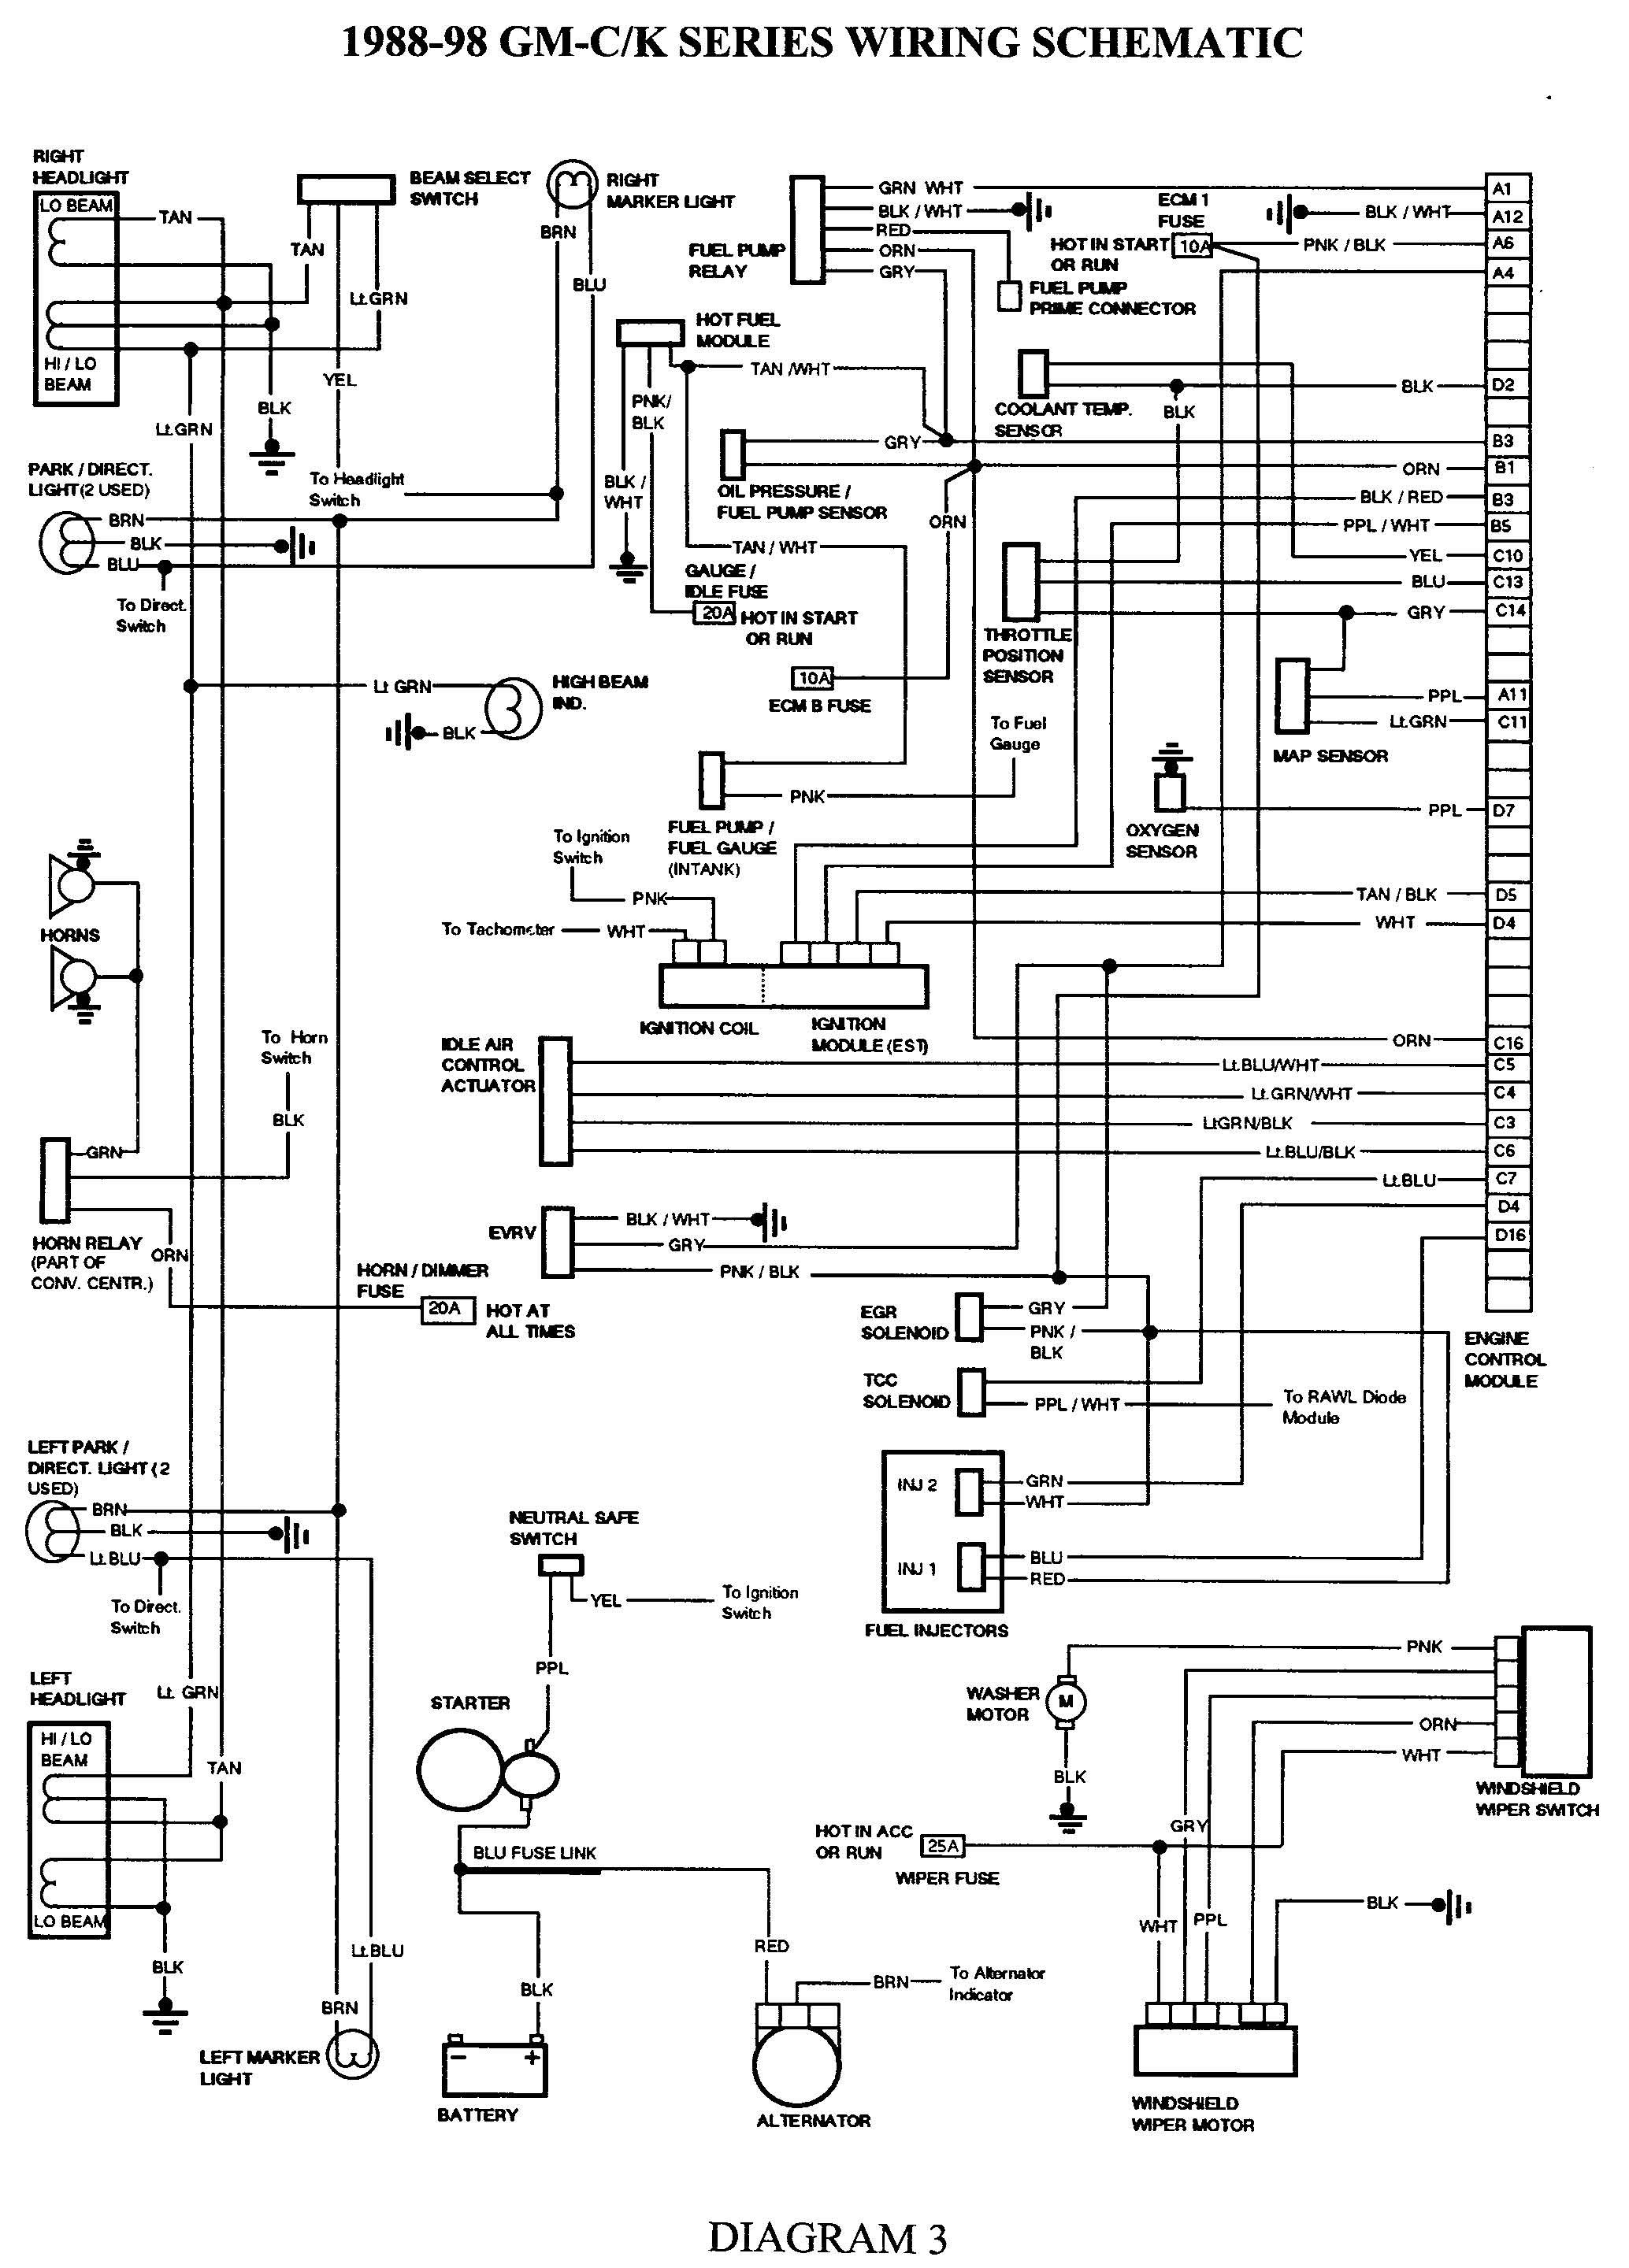 gmc truck wiring diagrams on gm wiring harness diagram 88 98 kc rh pinterest com 1966 gmc truck wiring harness 1971 gmc truck wiring harness